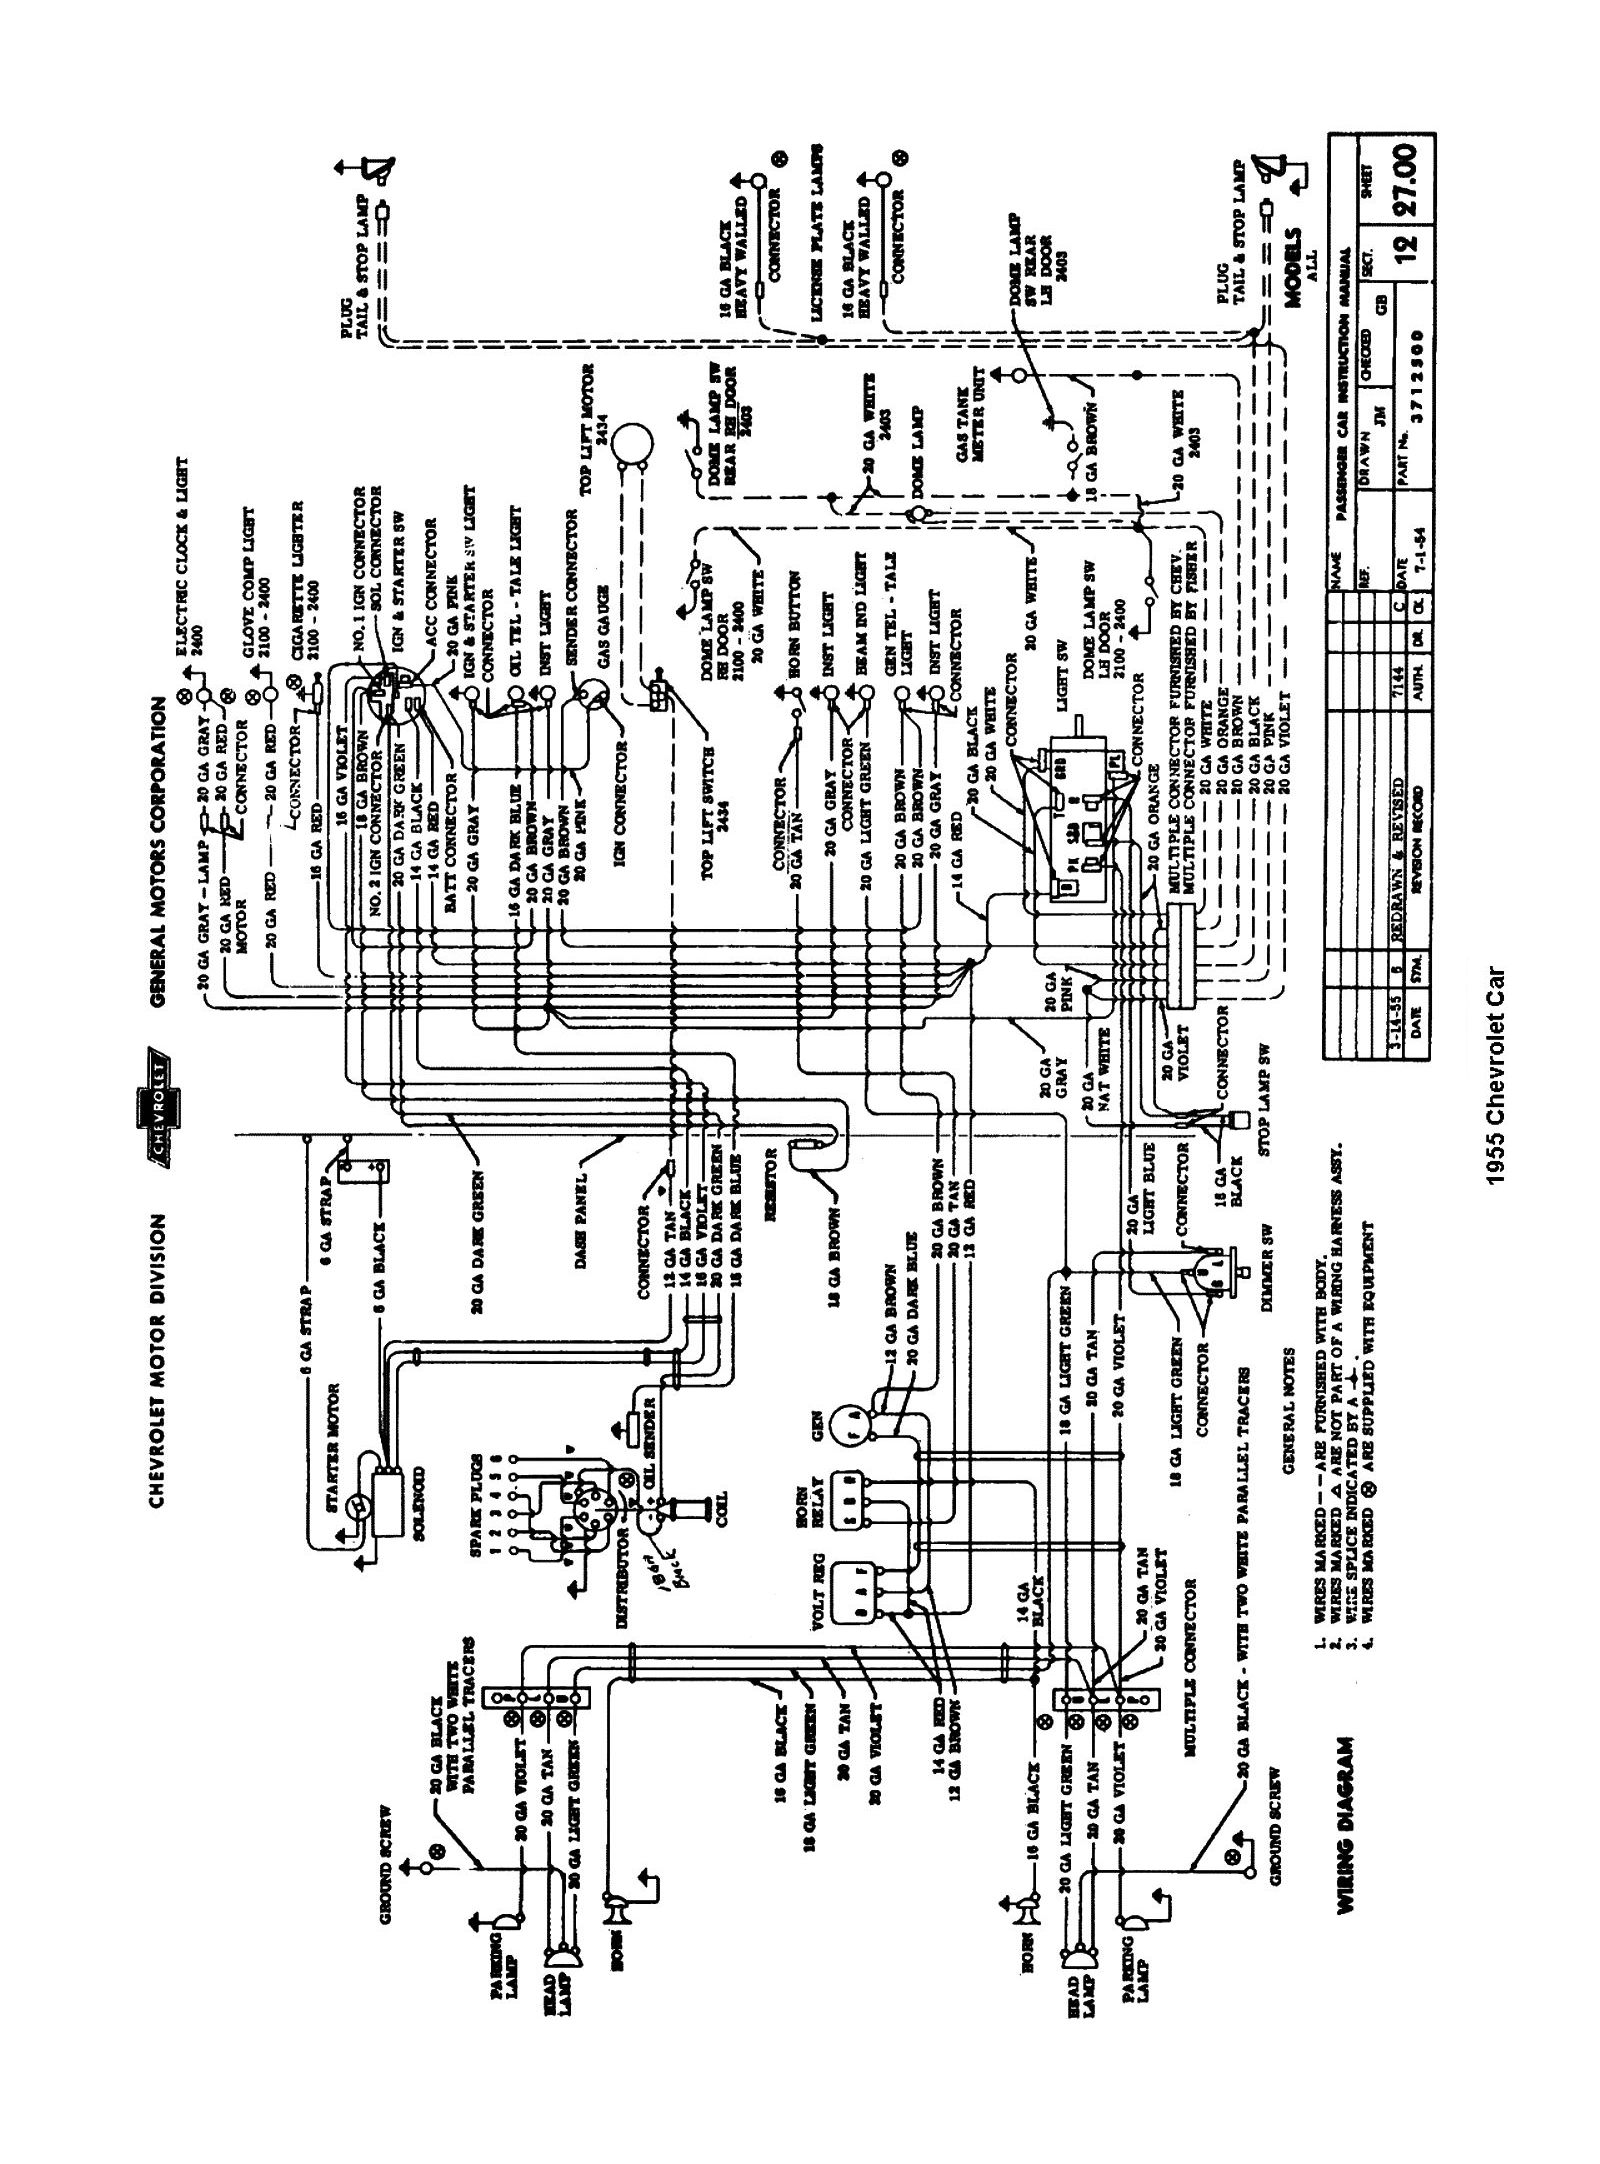 55car1 chevy wiring diagrams 1956 chevy headlight switch wiring diagram at et-consult.org